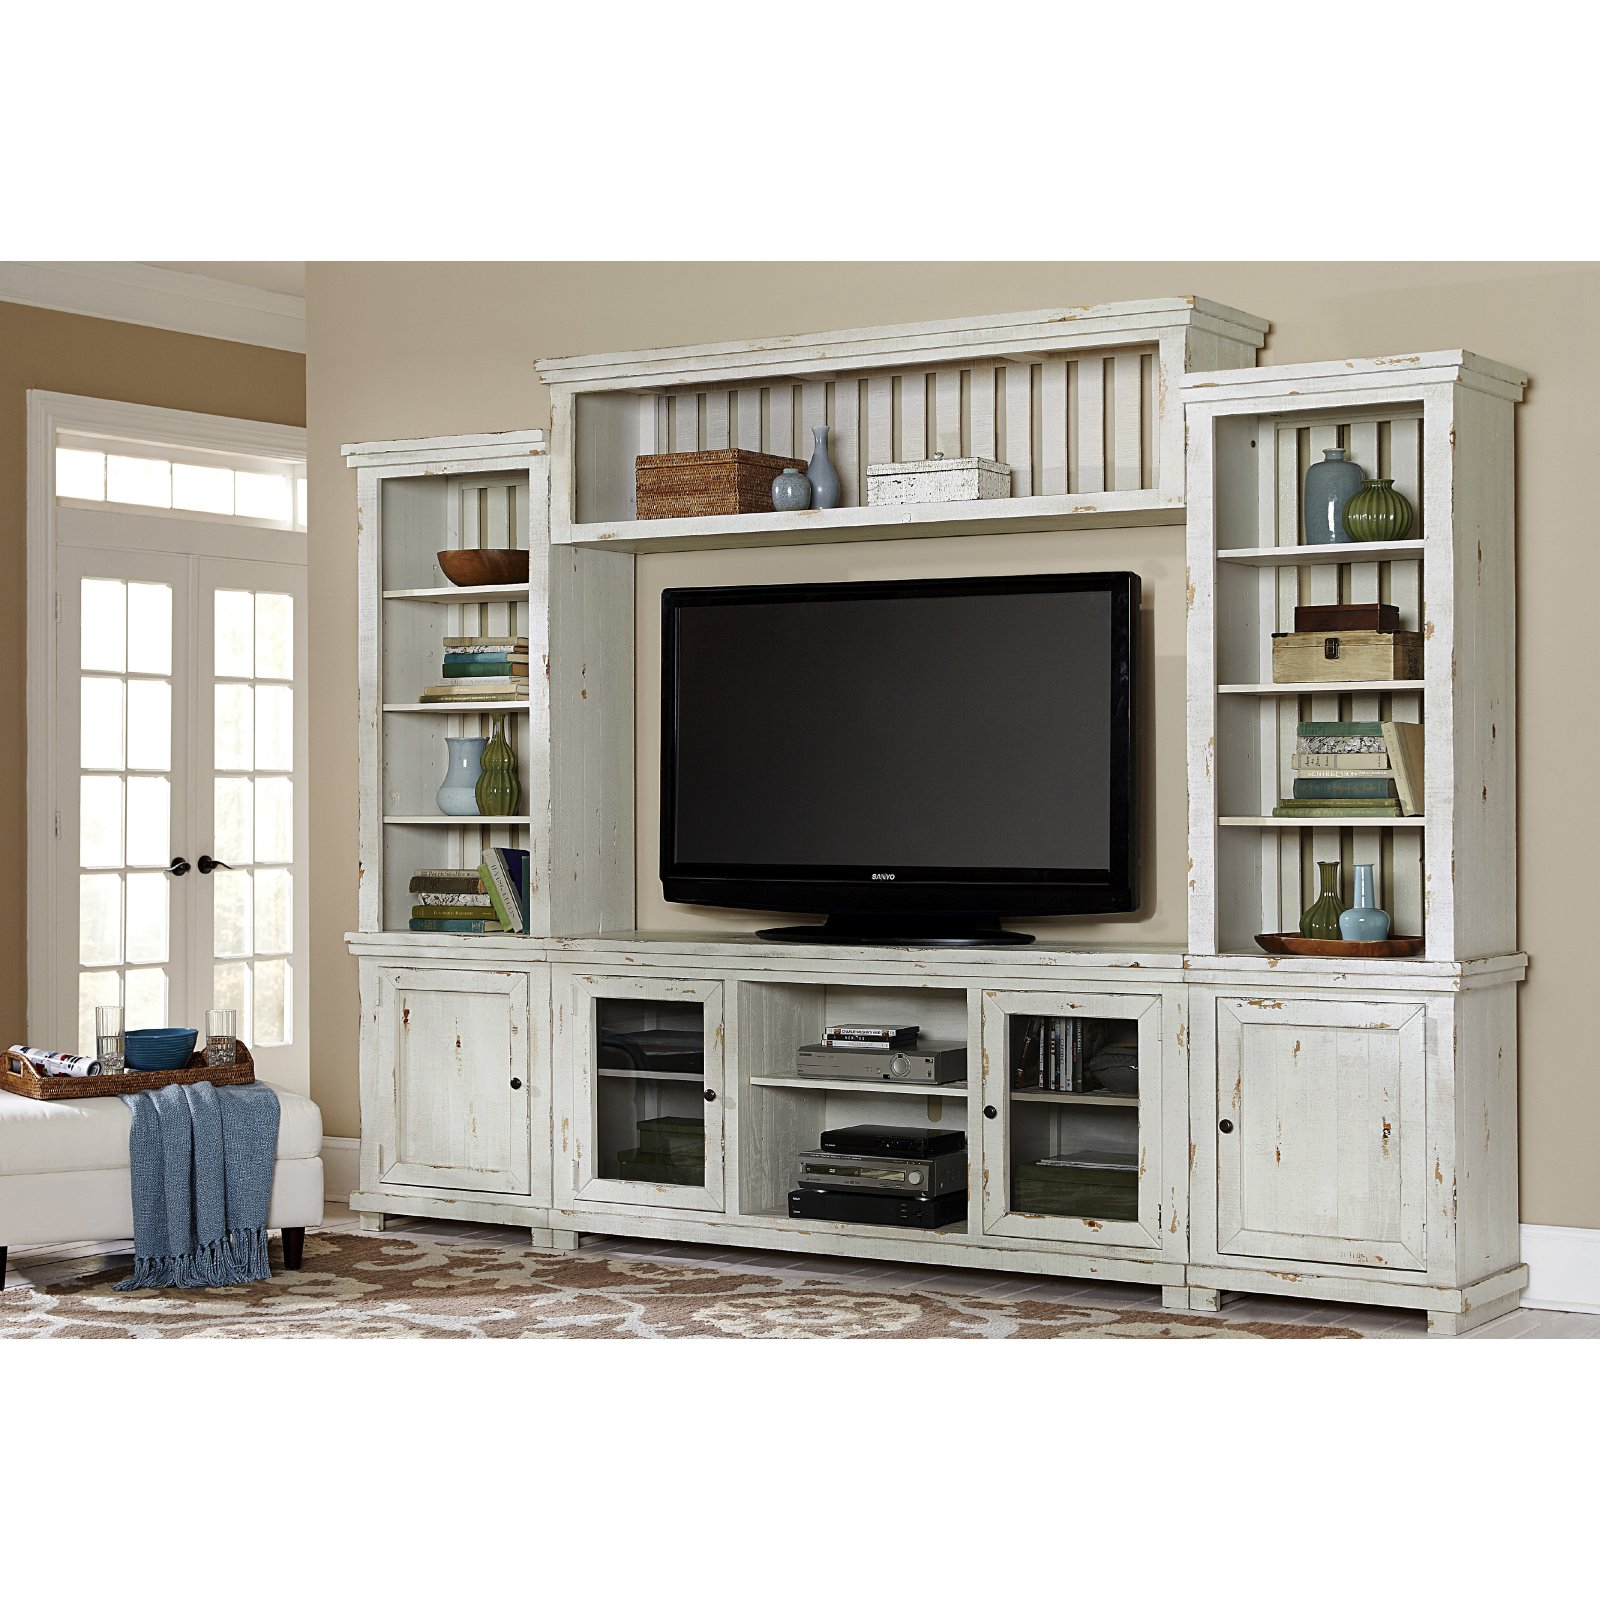 Progressive Furniture Willow Complete TV Wall Unit